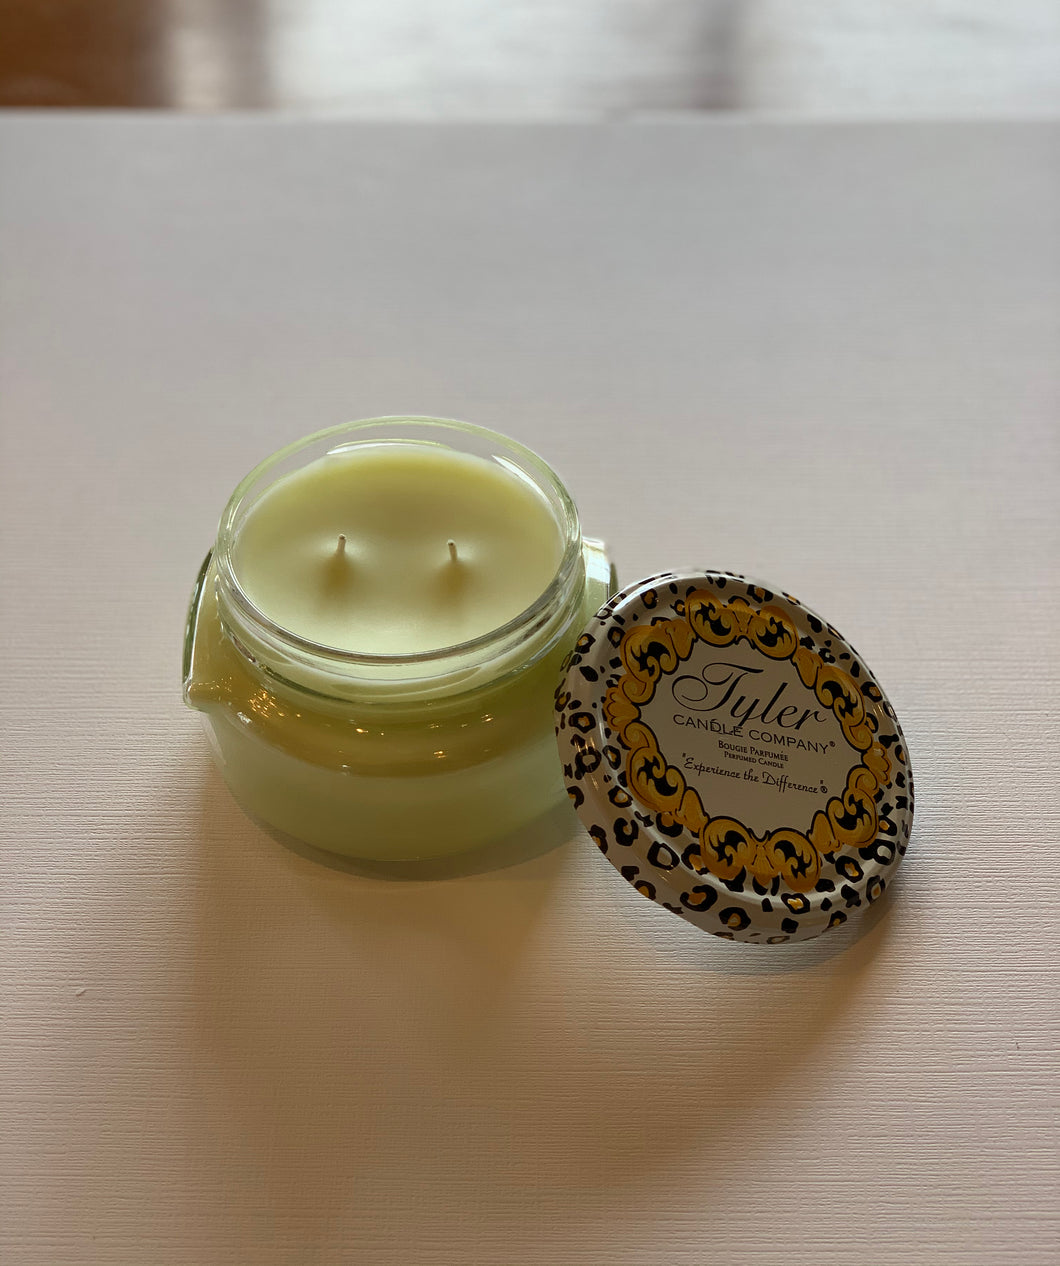 11 oz limelight candle